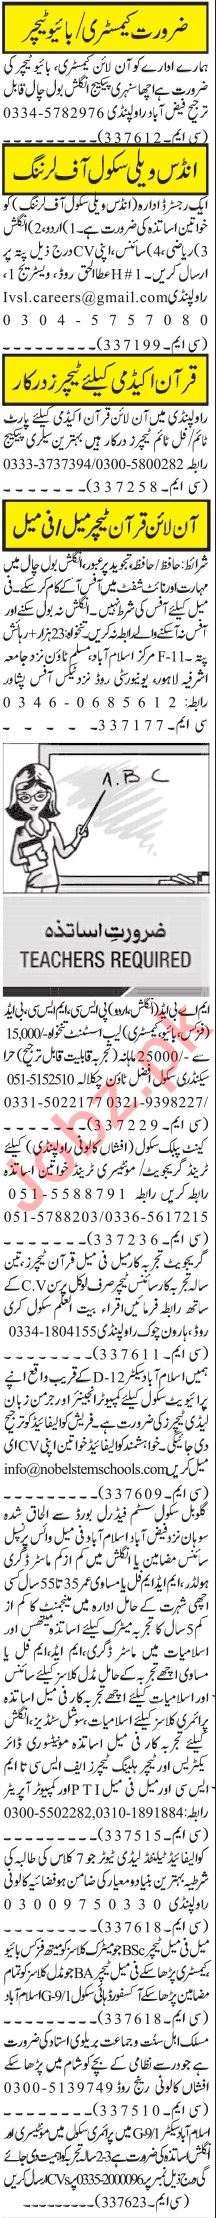 Jang Sunday Classified Ads 1st August 2021 for School Staff